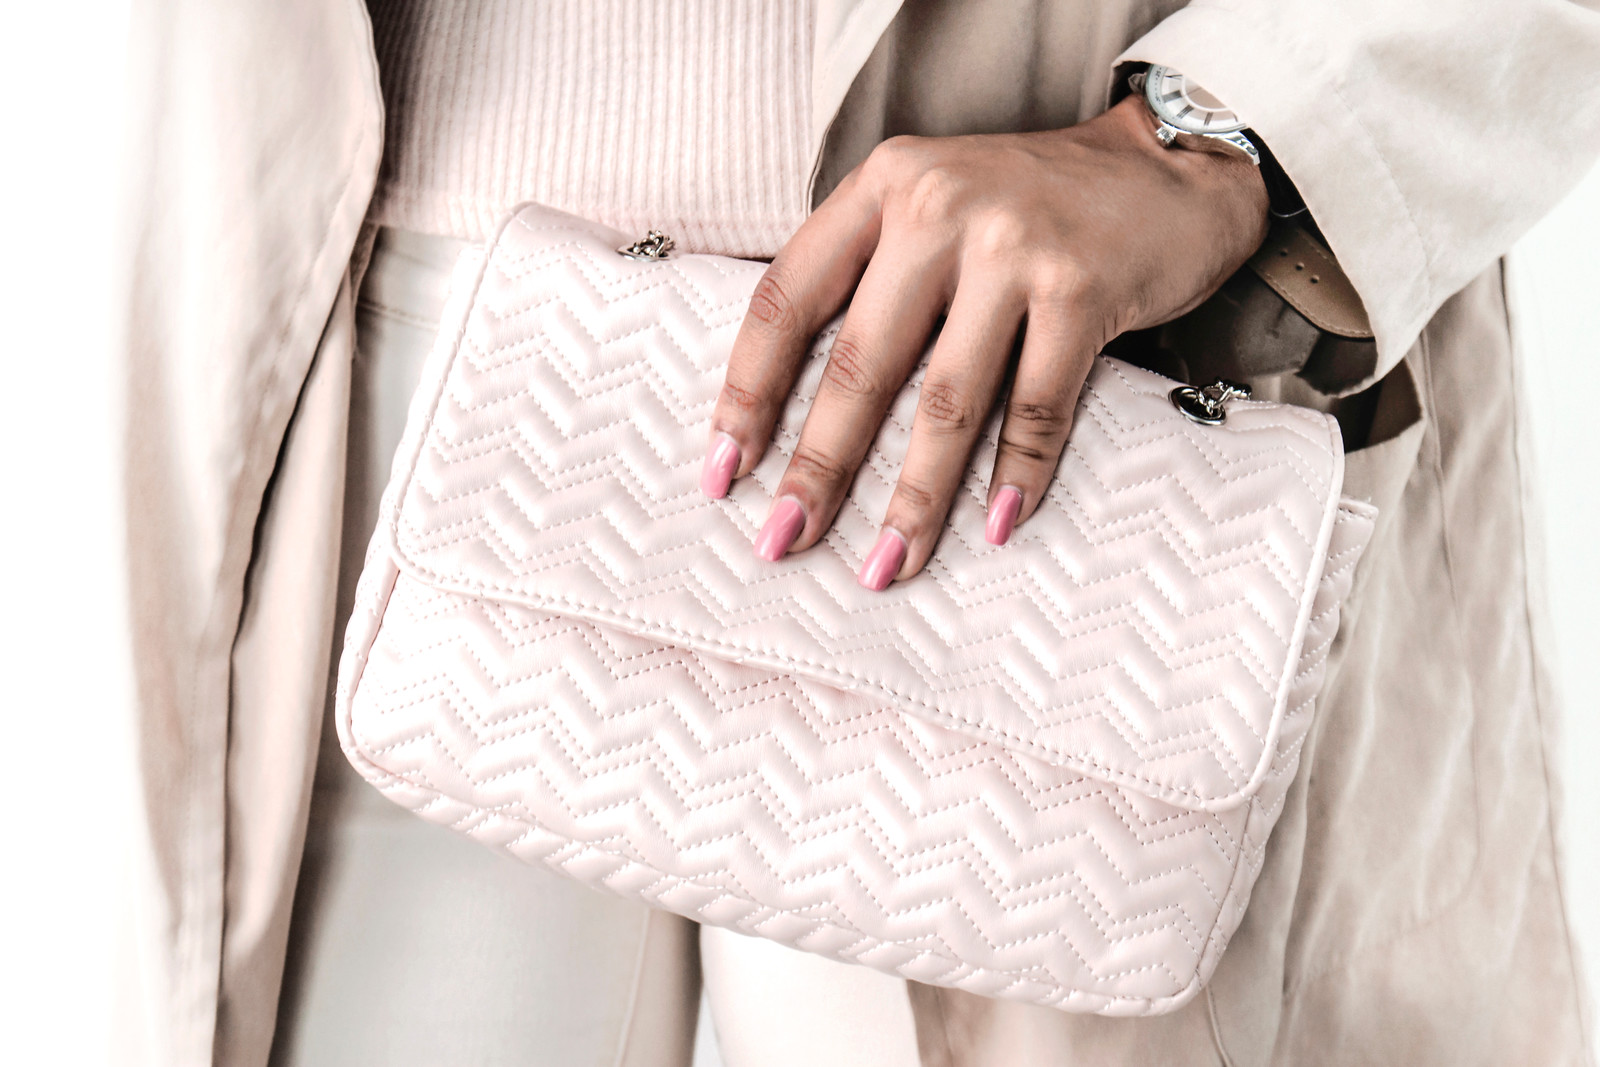 businesswoman wearing beige clothing and holding a pink purse